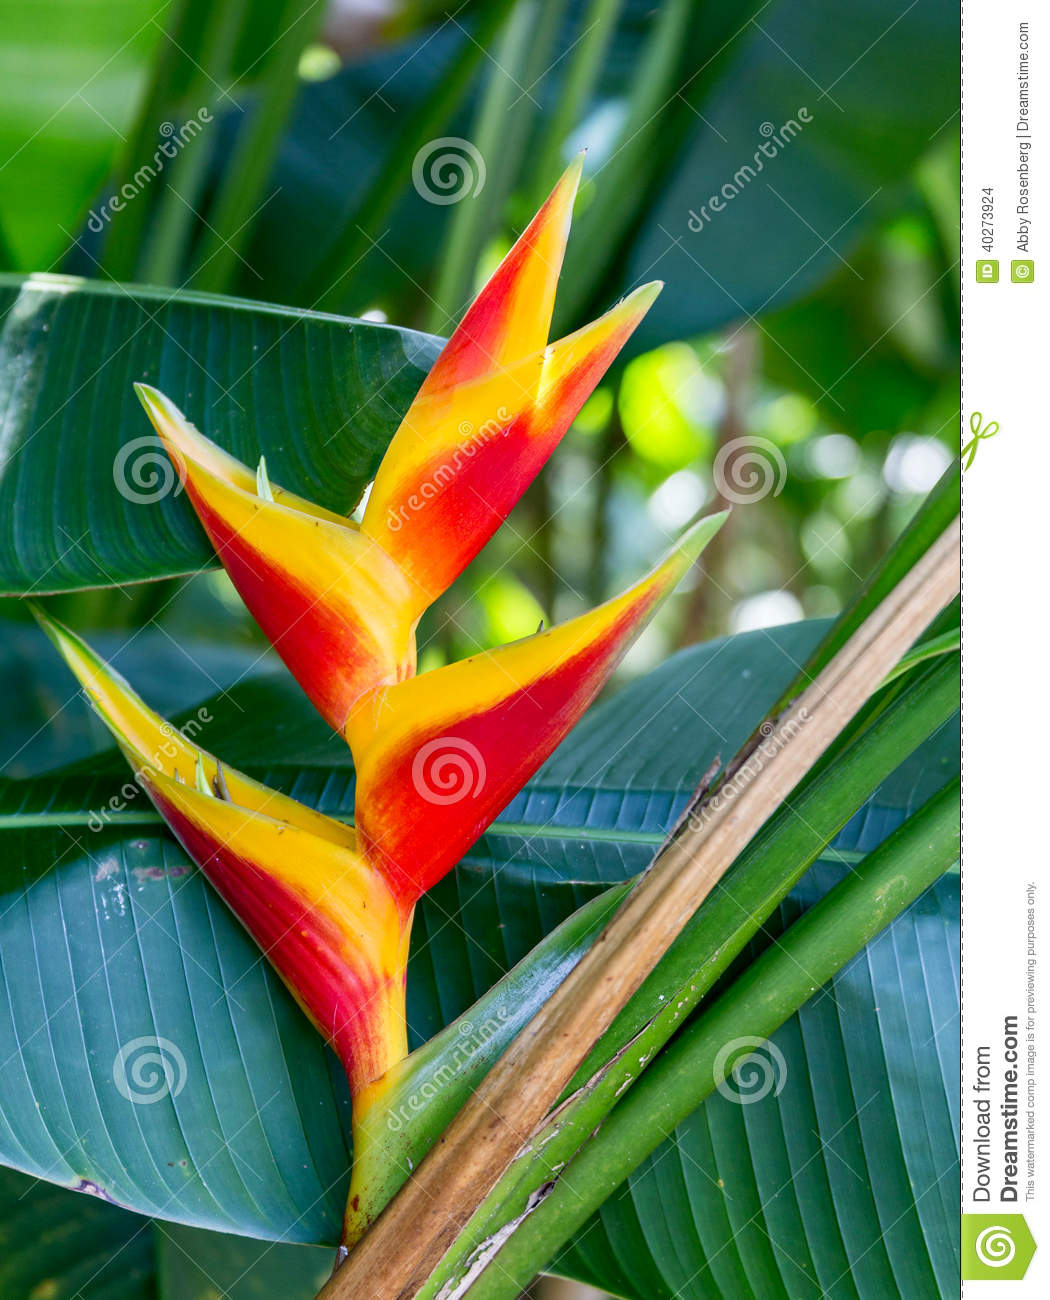 False bird of paradise heliconia stock photo image 40273924 - Flowers native to greece a sea of color ...